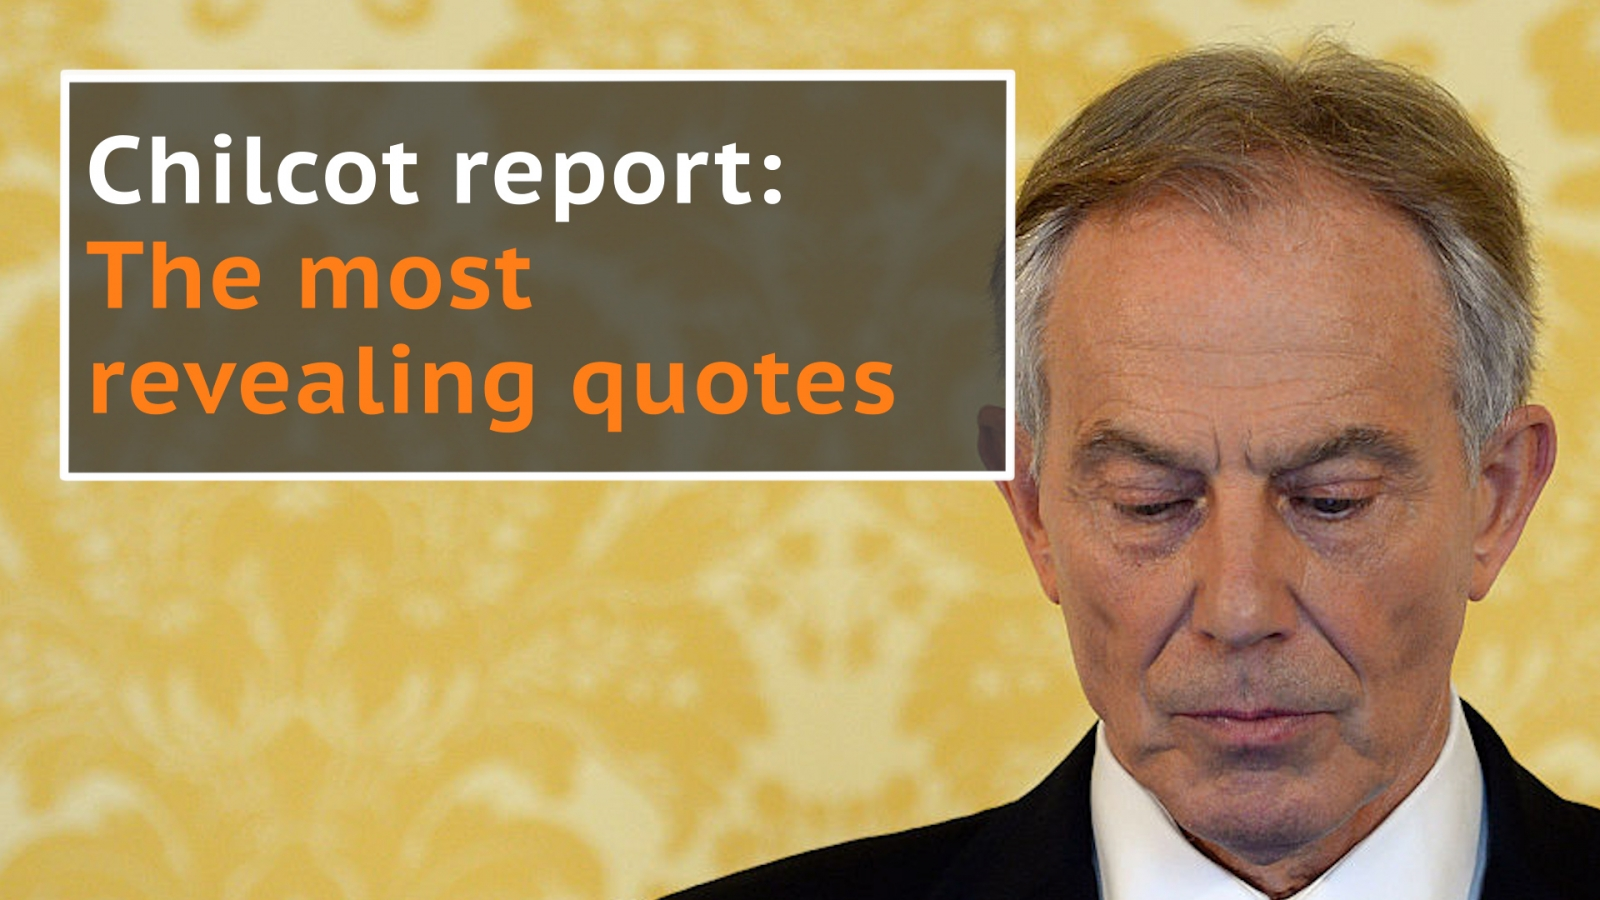 Chilcot report: The most revealing quotes